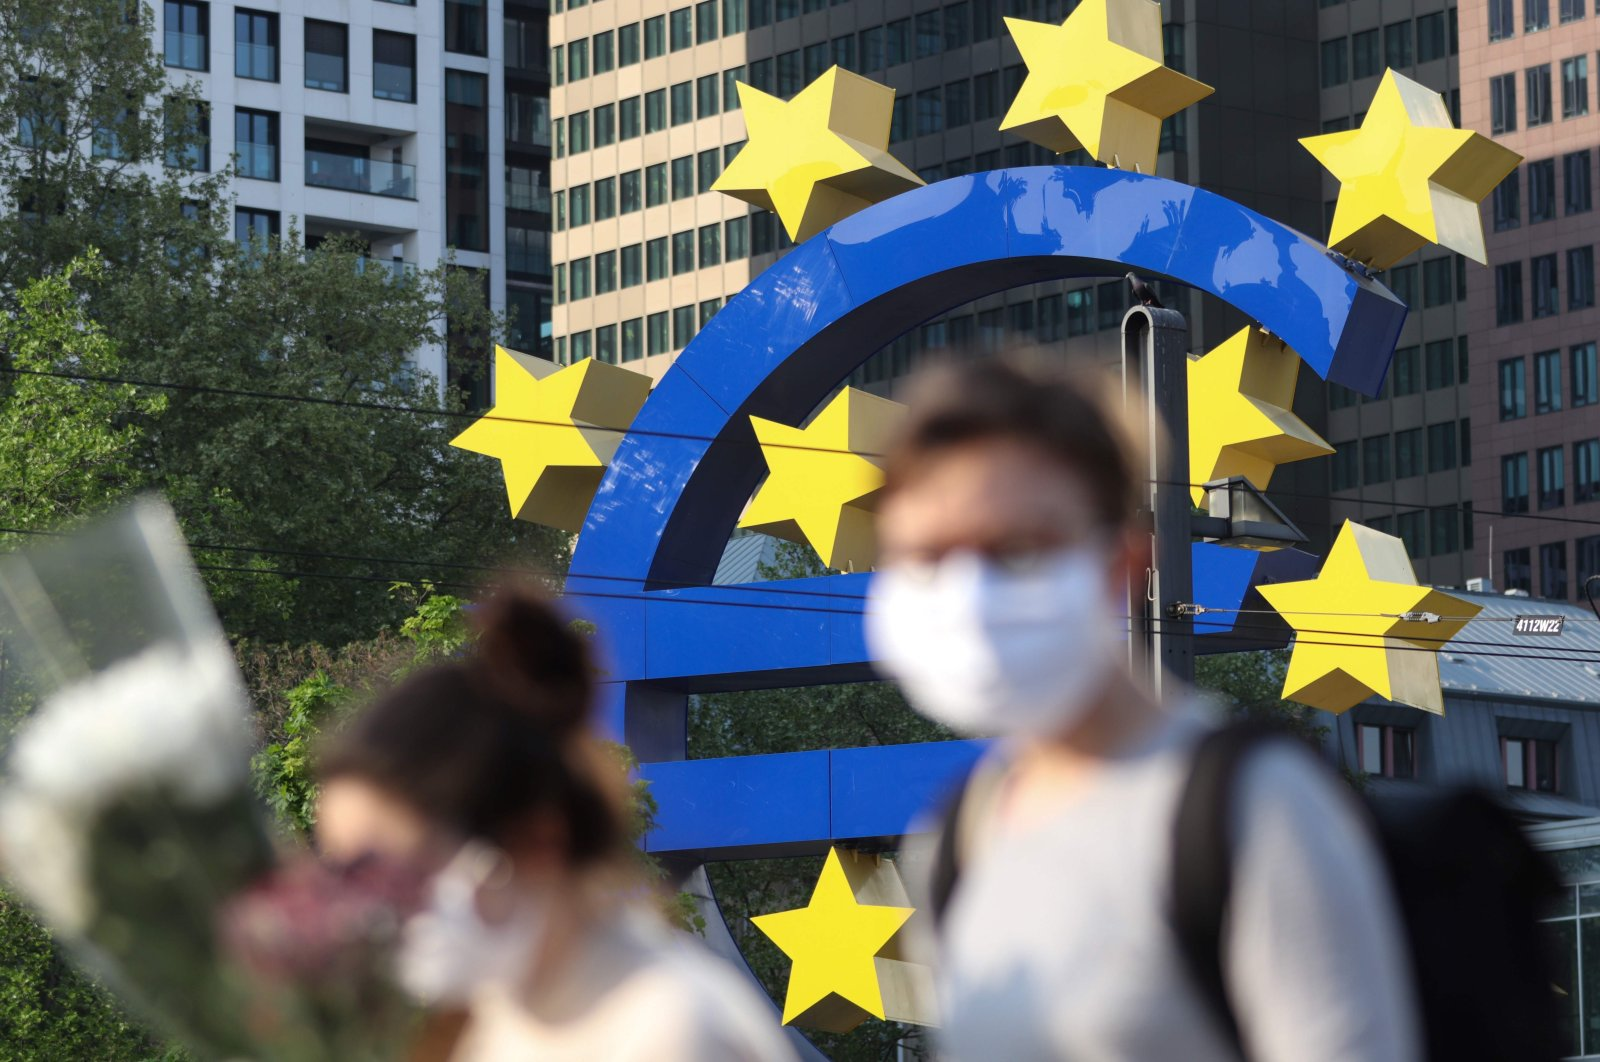 People wearing face masks walk in front of a big euro sign as the European Central Bank (ECB) headquarter can be seen in the background, in Frankfurt am Main, western Germany, April 24, 2020. (AFP Photo)